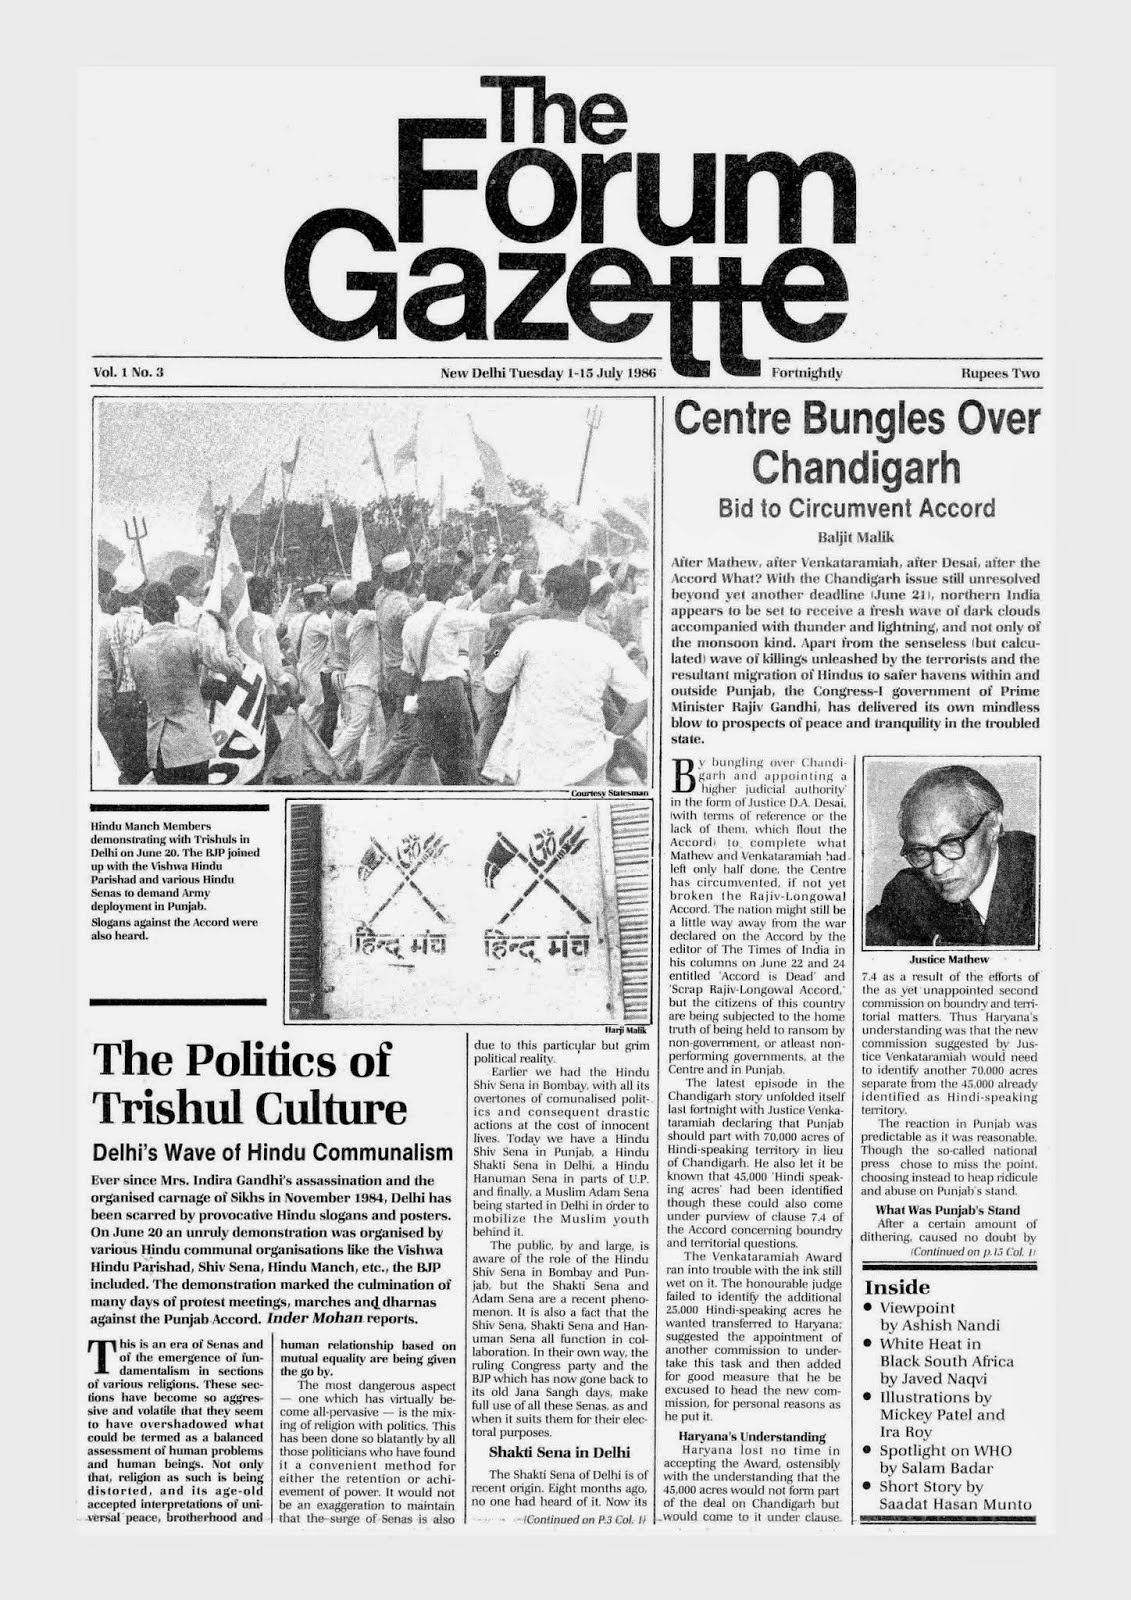 http://sikhdigitallibrary.blogspot.com/2015/03/the-forum-gazette-vol-1-no-3-july-1-15.html